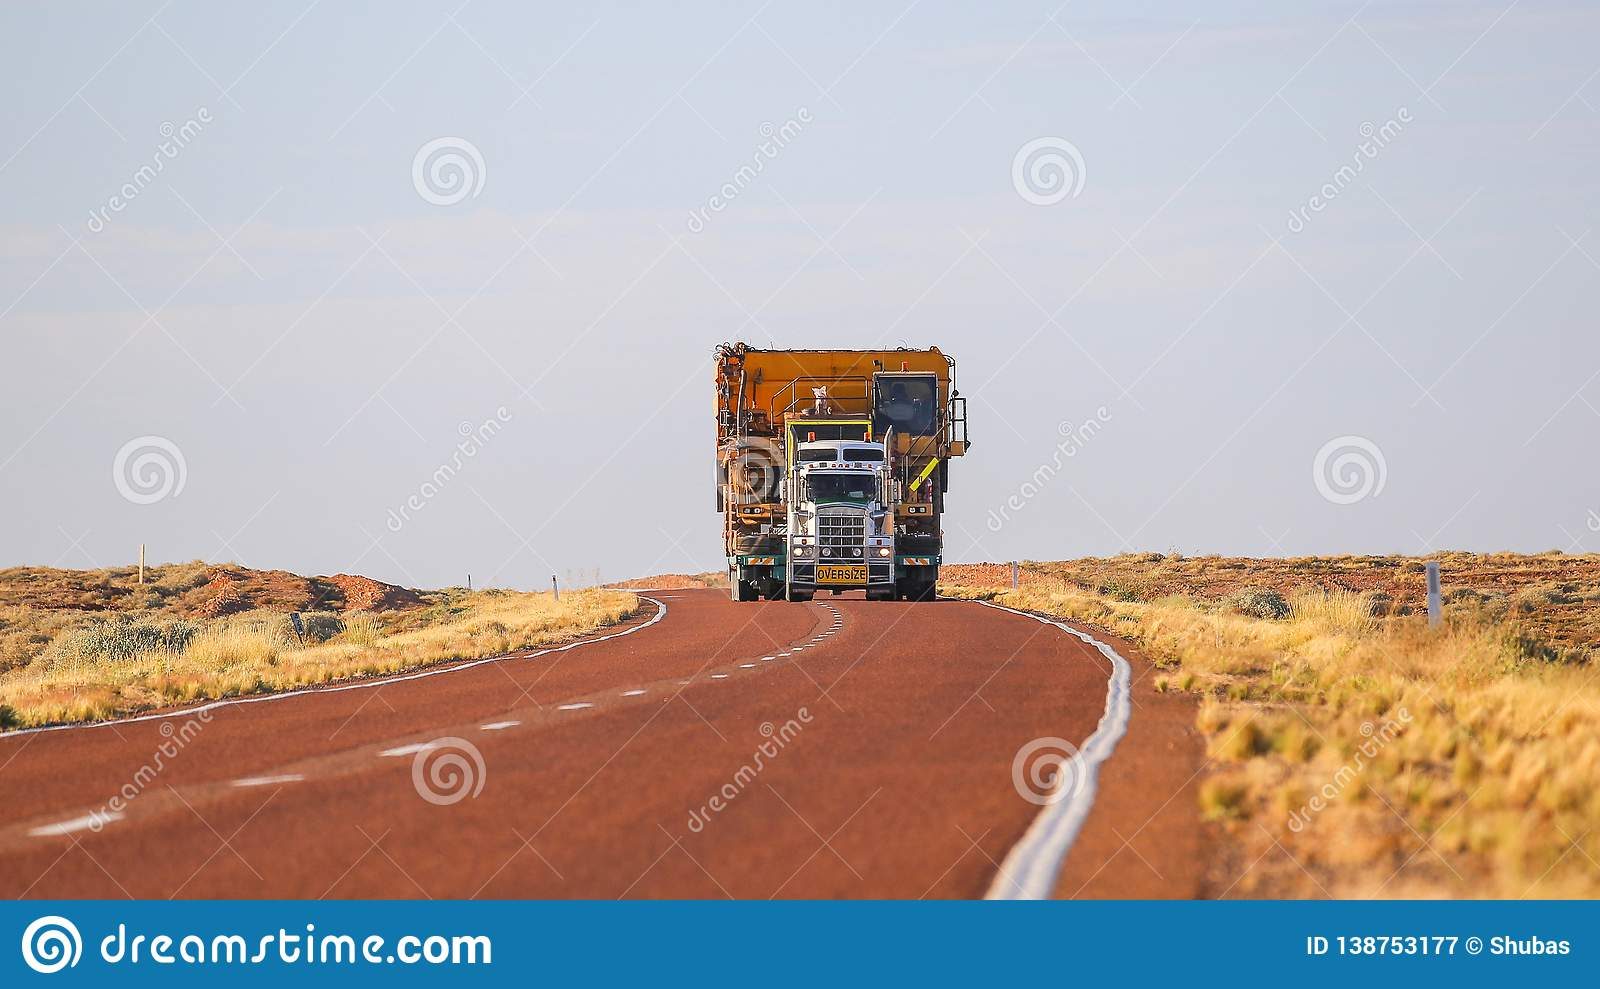 Truck Oversize load carries oversized cargo